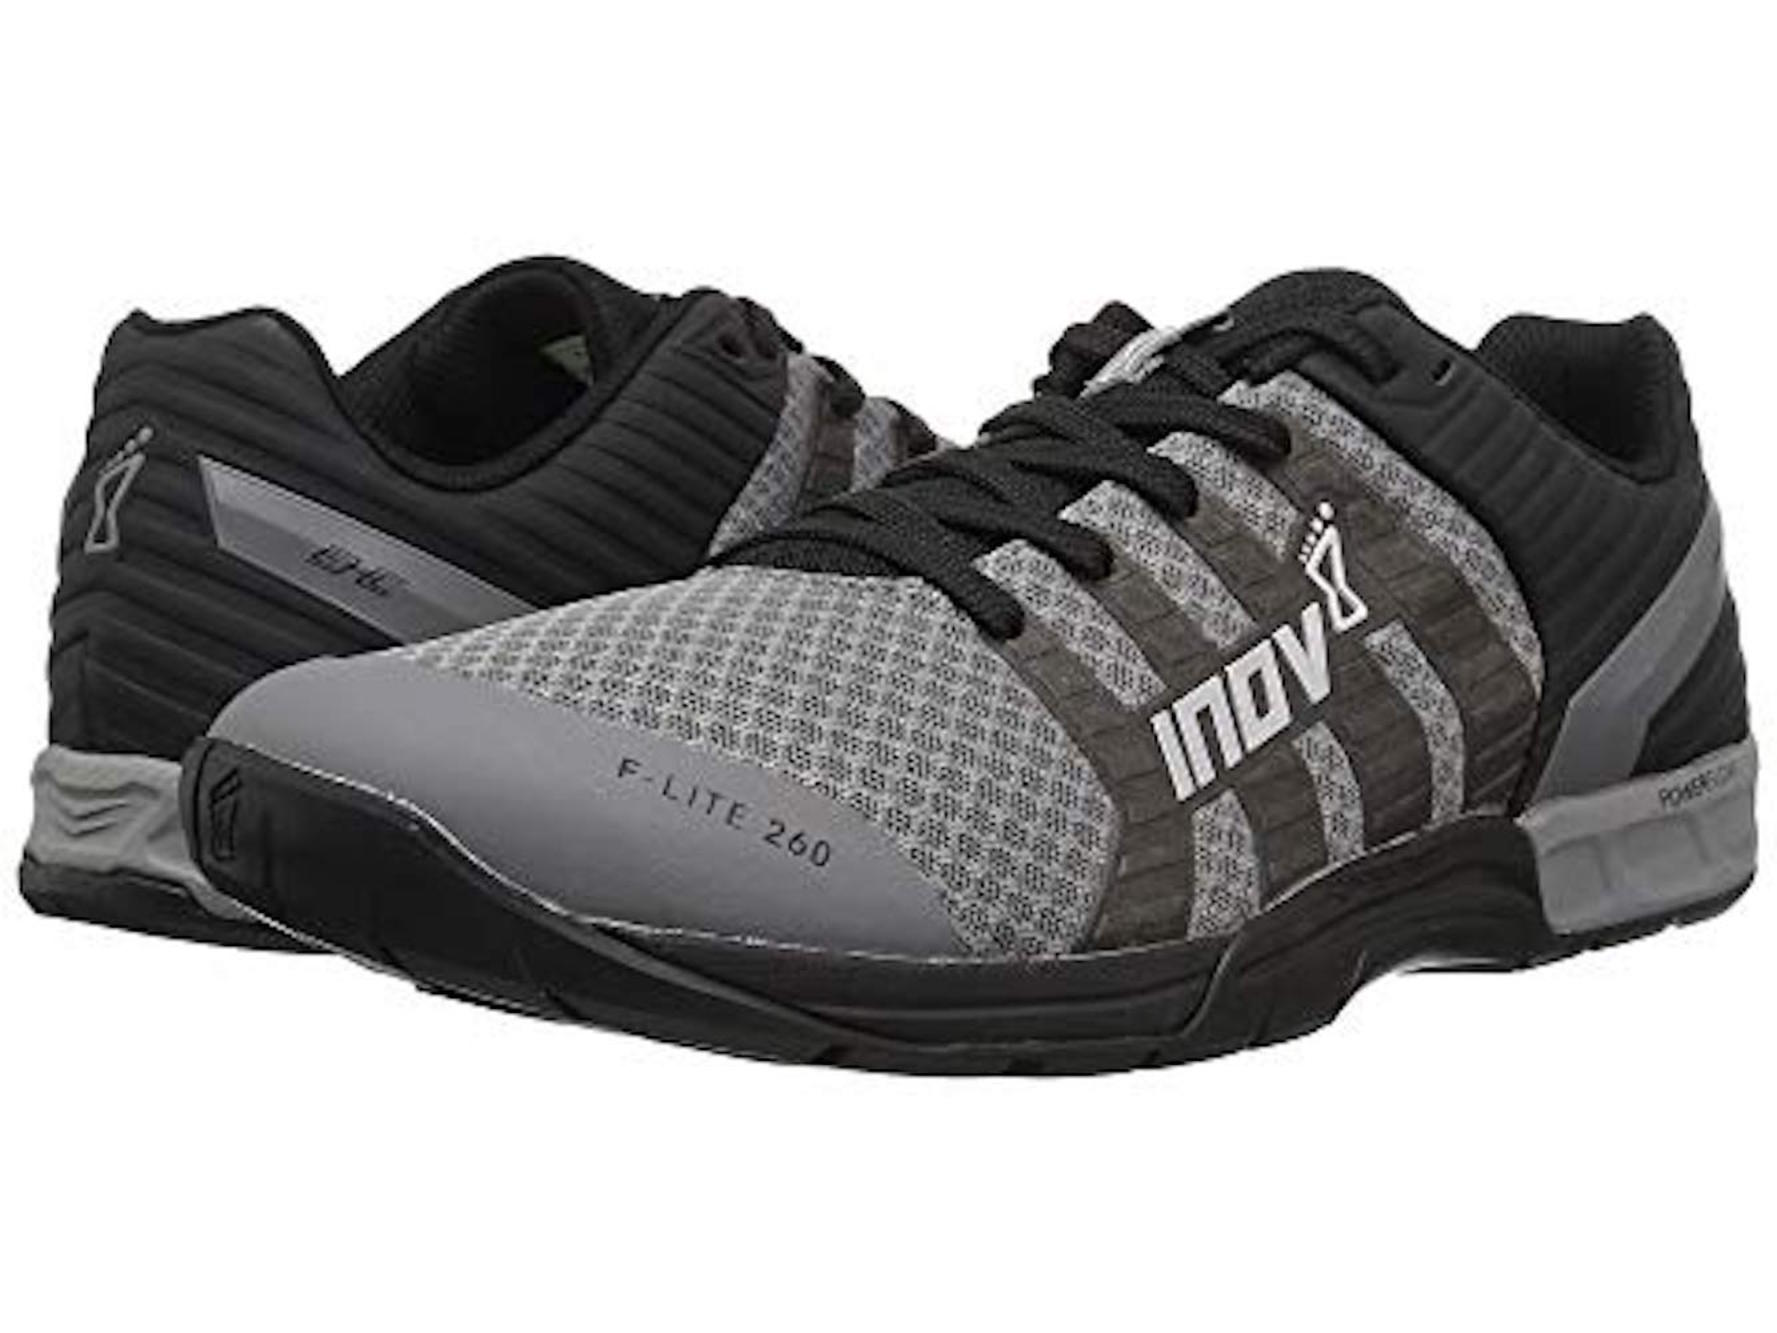 Inov-8 Womens F-Lite 260 Running Shoe Low Top Lace Up 16c3dffdf6